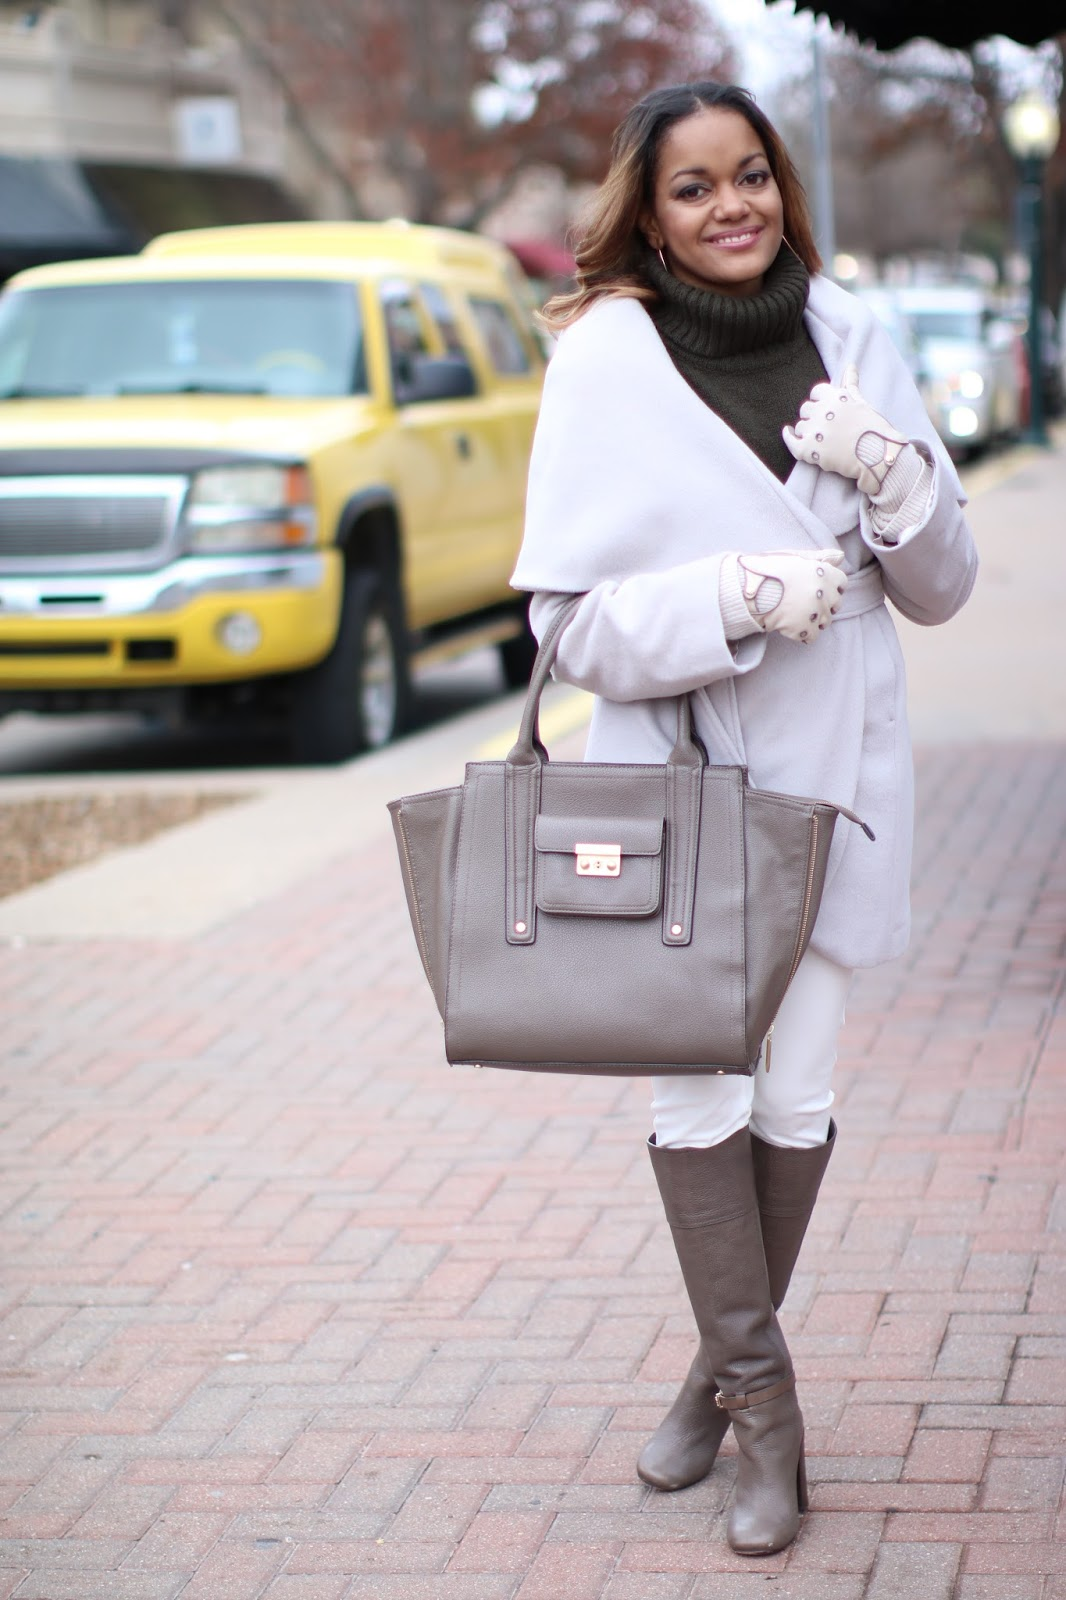 tahari shawl collar coat, shawl collar coat, olivia pope style,henri bendel moto gloves, philip lim for target handbag, tory burch boots, taupe boots, wear white in winter, winter fashion, fashion blogger, dallas blogger, black girl blogger, how to wear neutrals